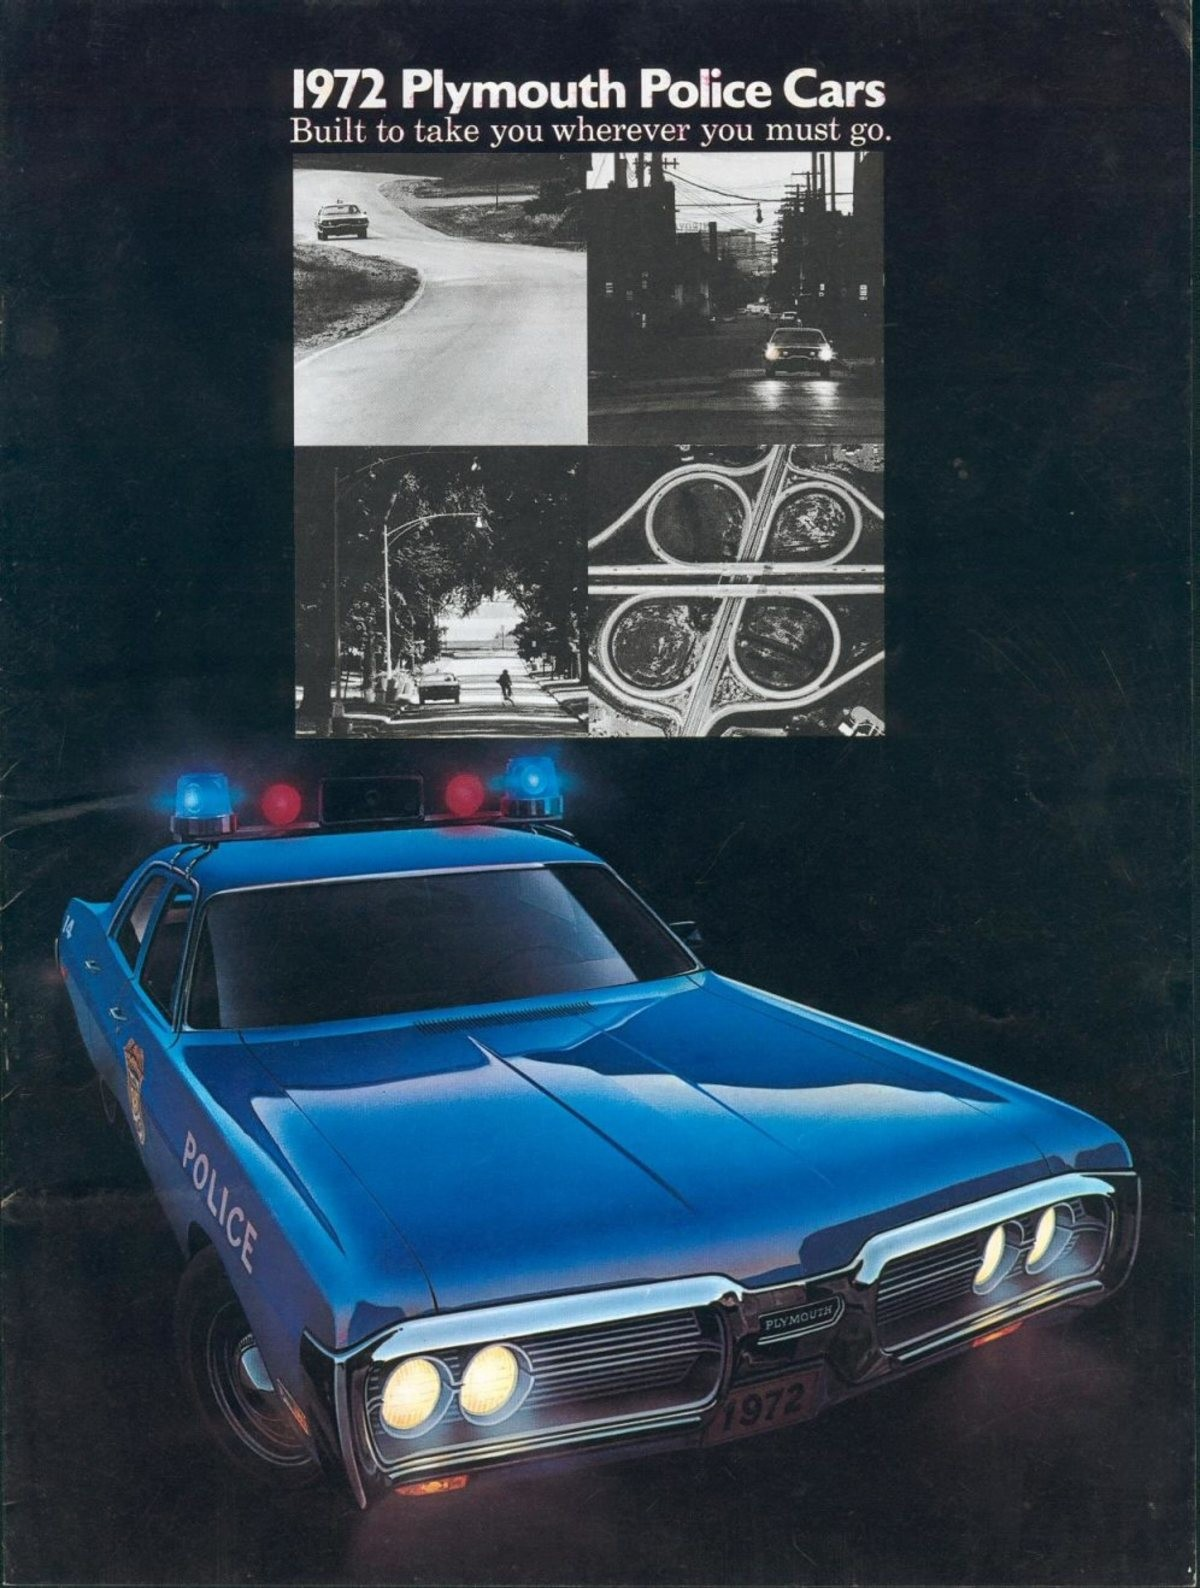 Brochure for Plymouth police cars - 1972. Back in that simple nostalgic era filled with assassinations, firebombings, and civil unrest, companies used to send b